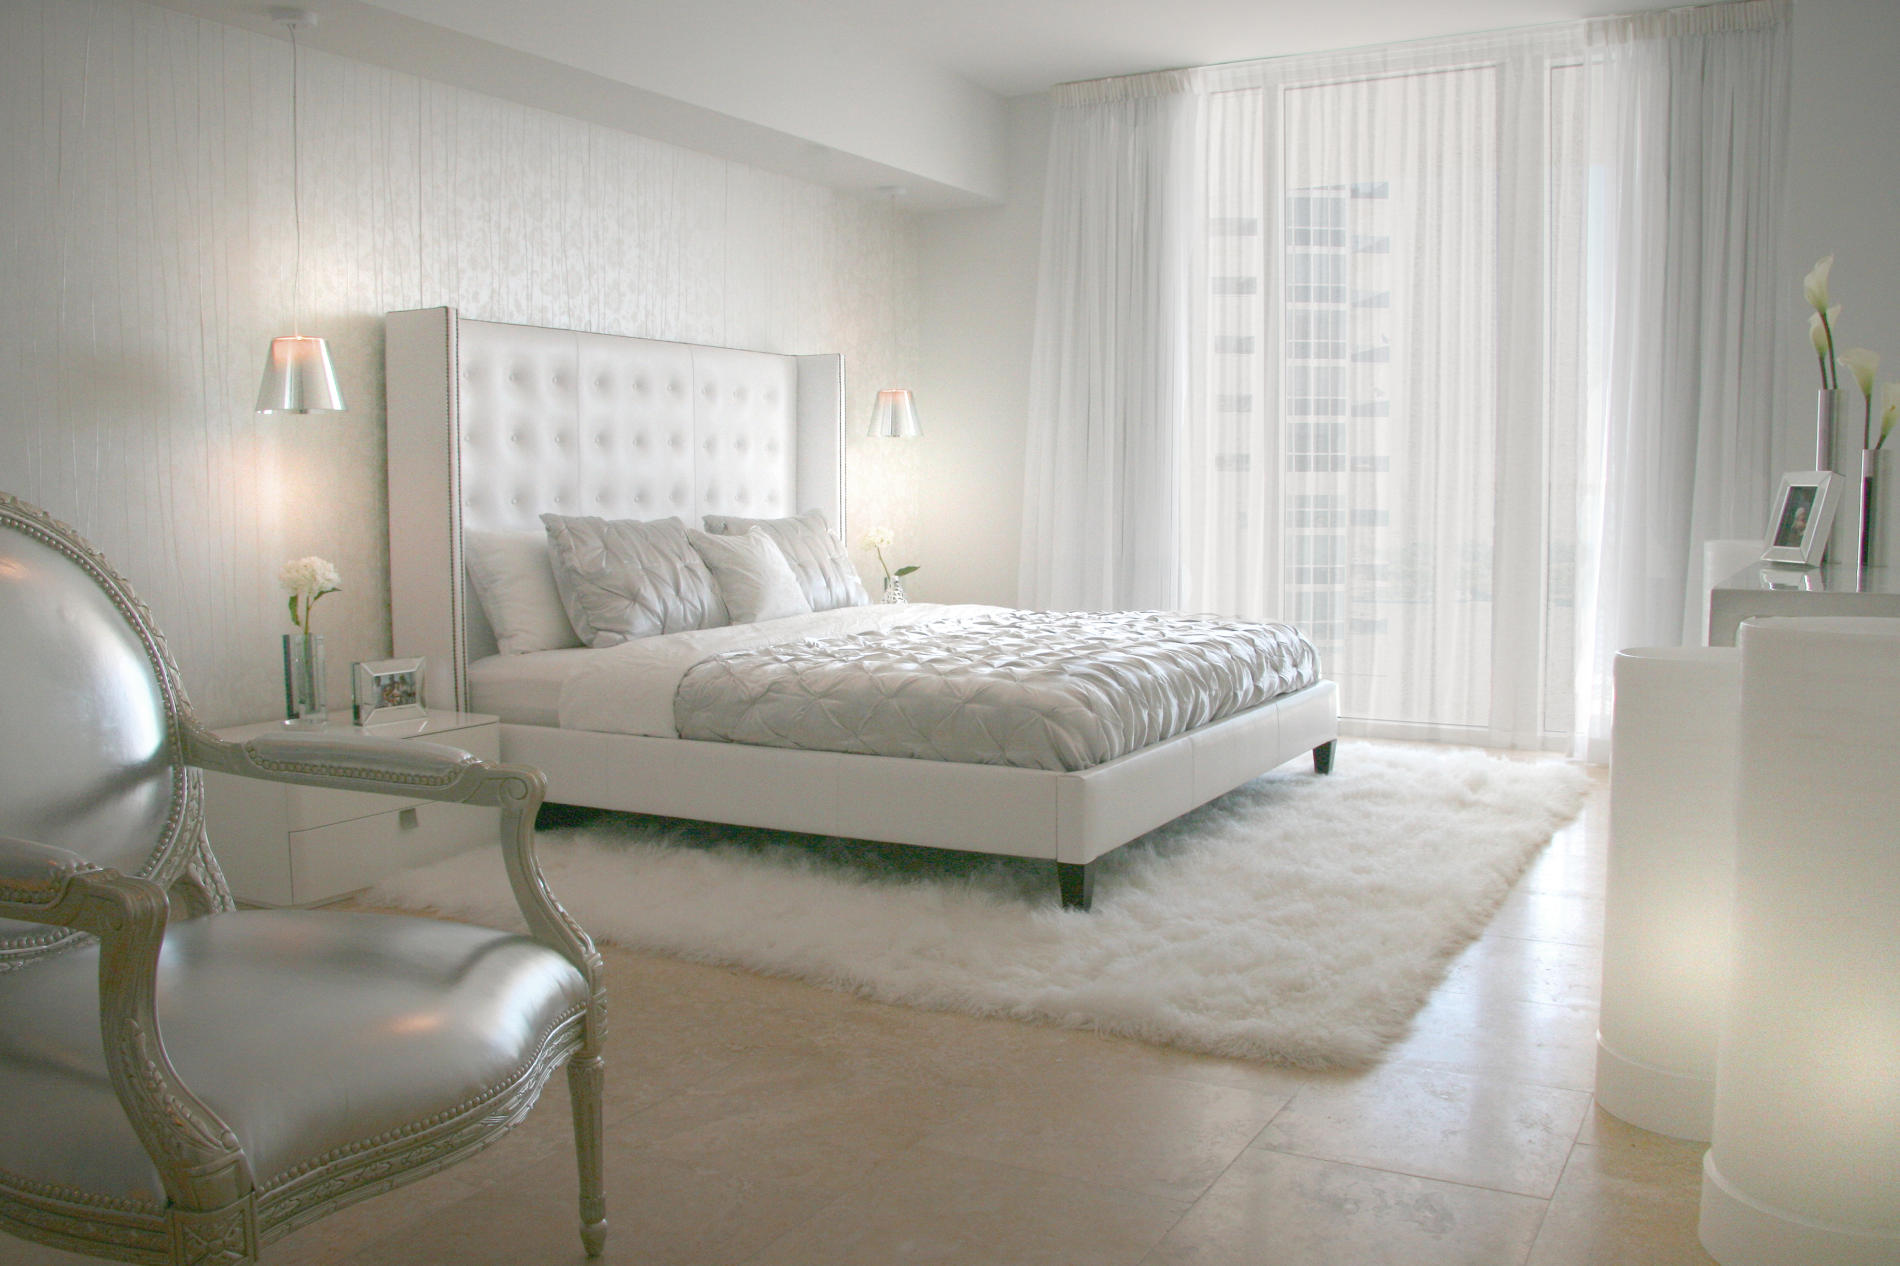 Your Bedroom Air Conditioning Can Make or Break Your Decor  My Decorative